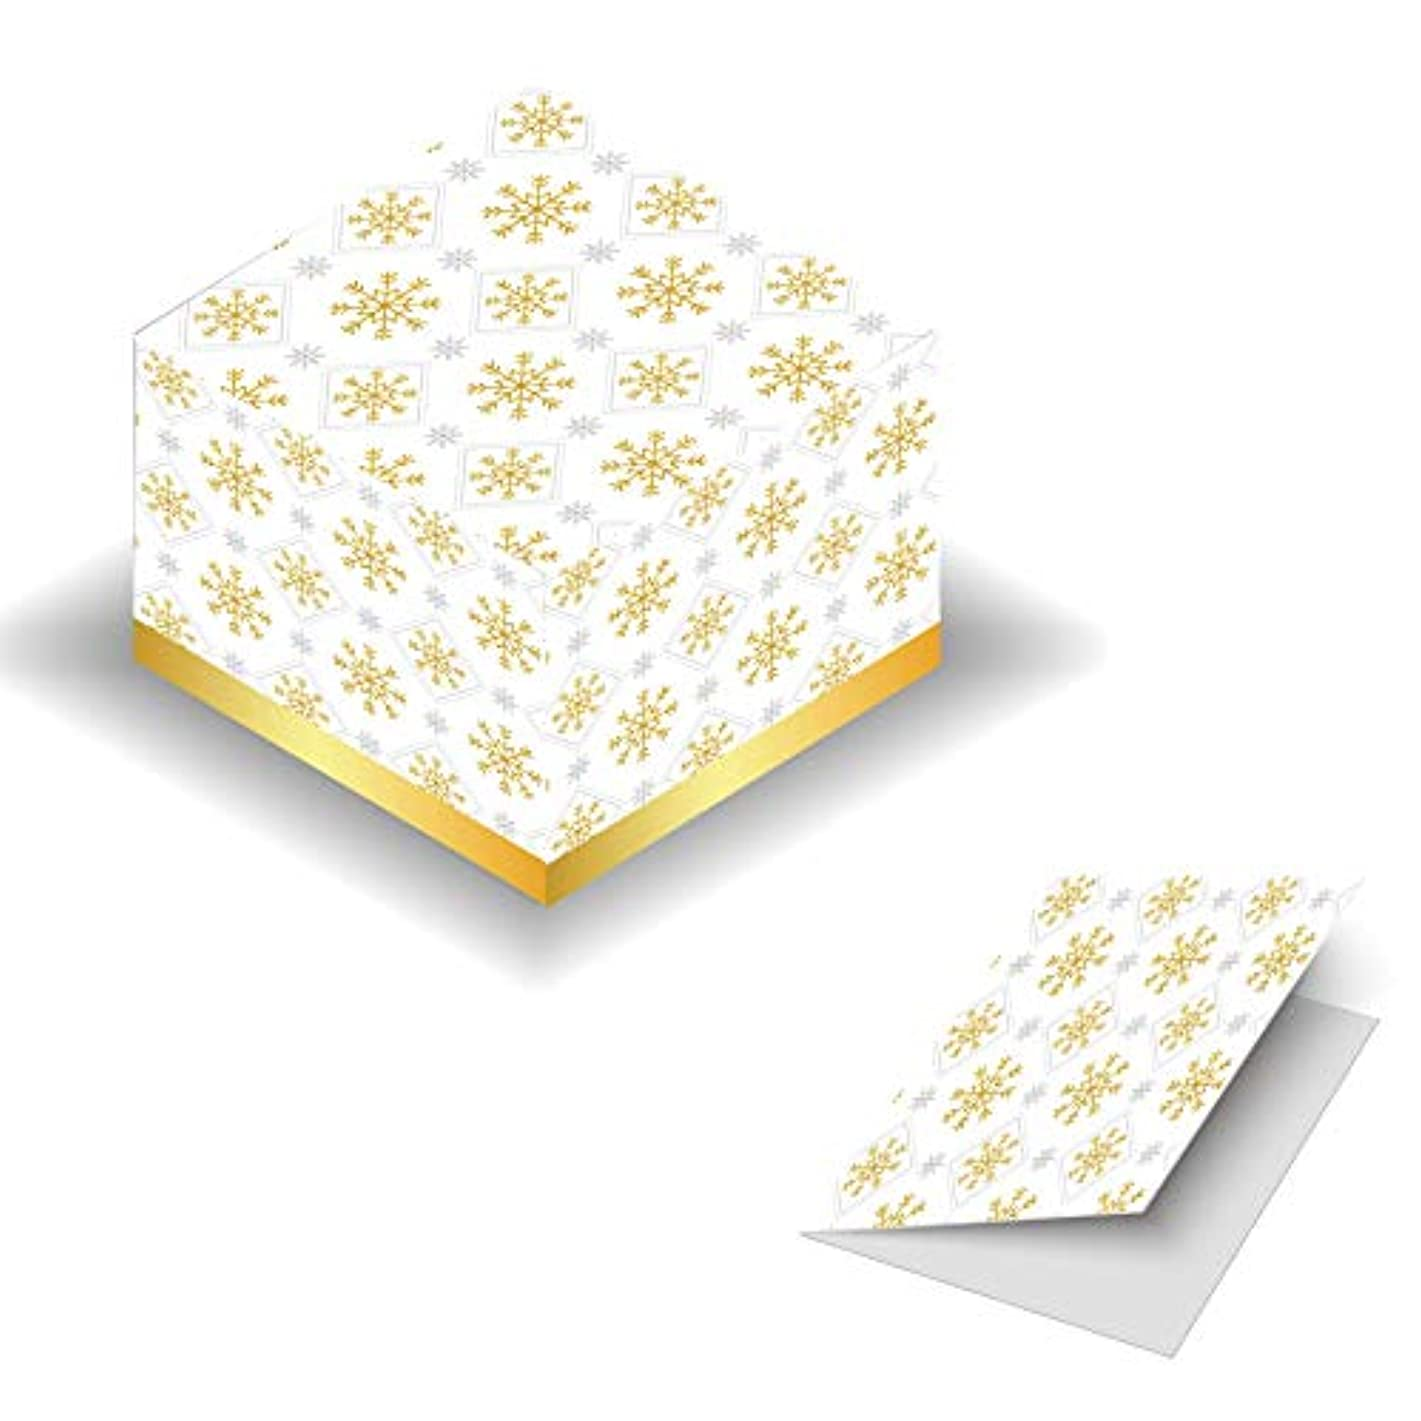 LARZN Premium Gift Boxes 4x4x4 inches, White Gold Snowflakes, 12 Pack, Paper Gift Boxes with Lids for Gifts, Candy, Crafting, Jewelry, Party Favors, Cupcake, Ornaments, Mugs, Toys & More.